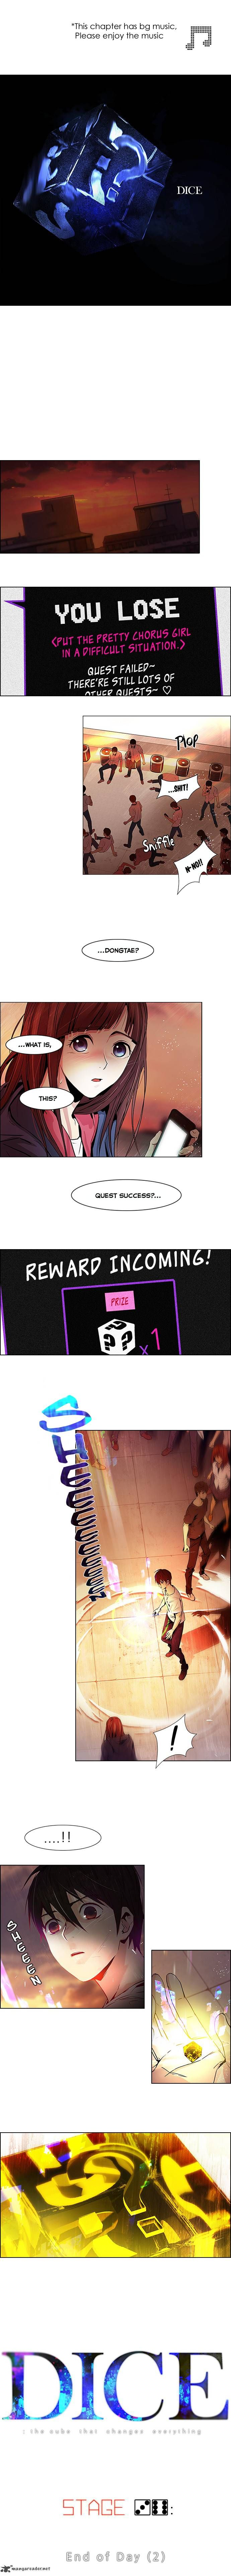 DICE: the cube that changes everything 36 Page 2